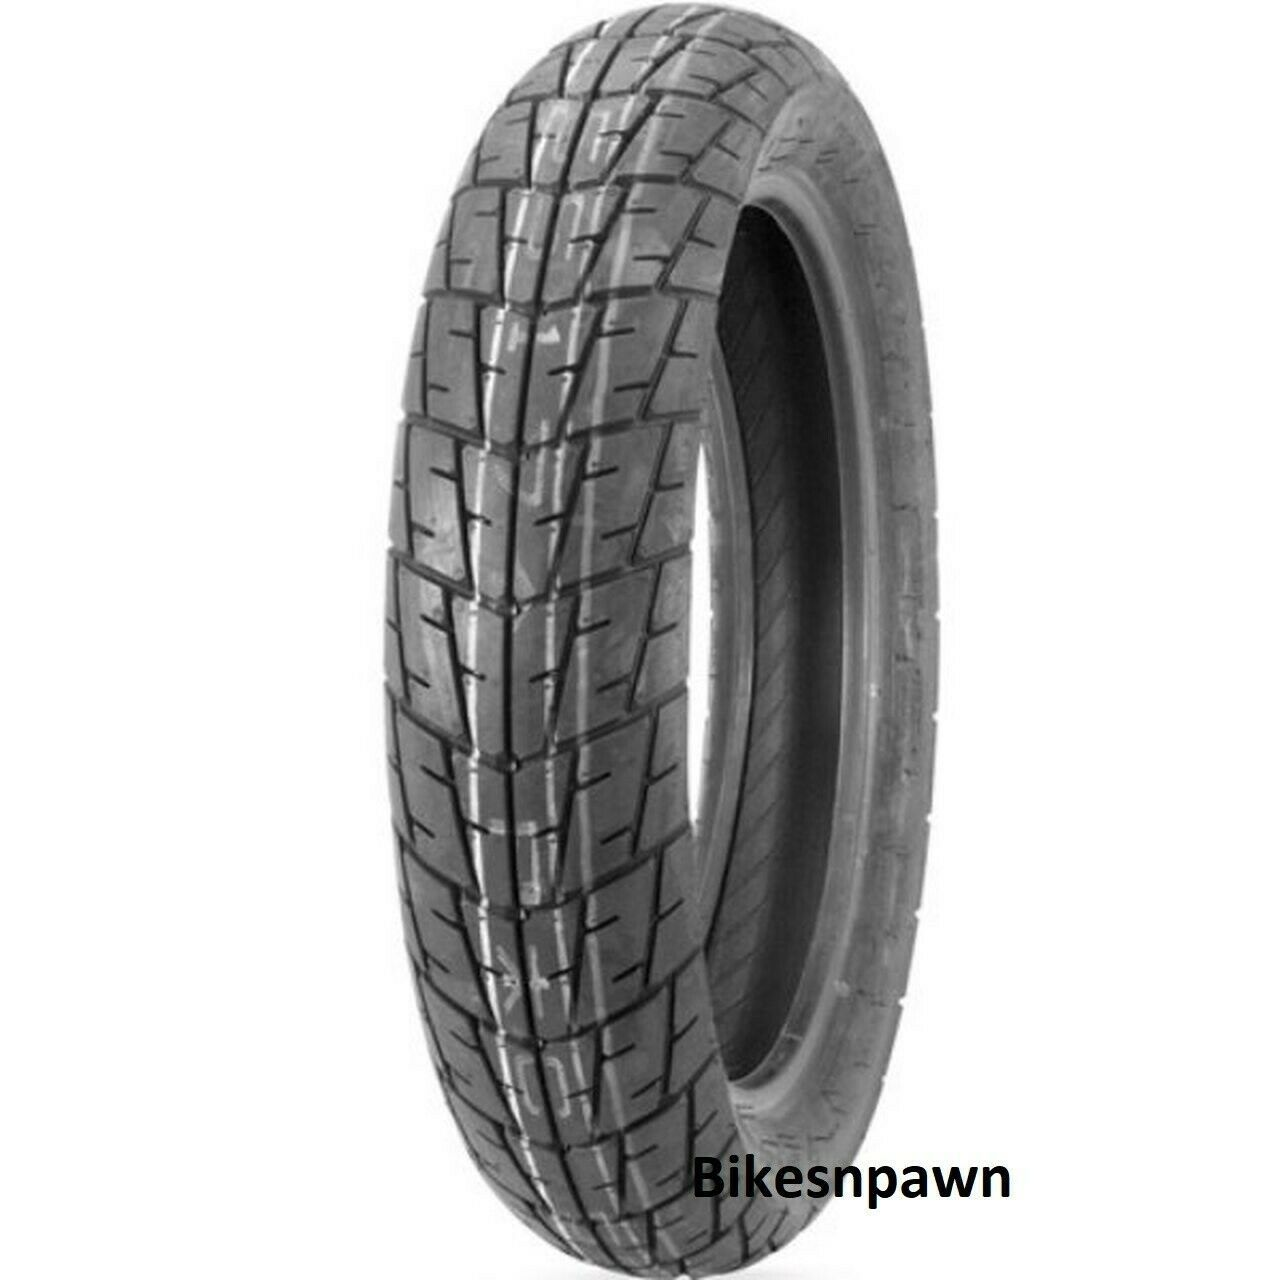 New Dunlop K330 120/80-16 Rear Tire 60S Tubeless O.E for Buell Blast